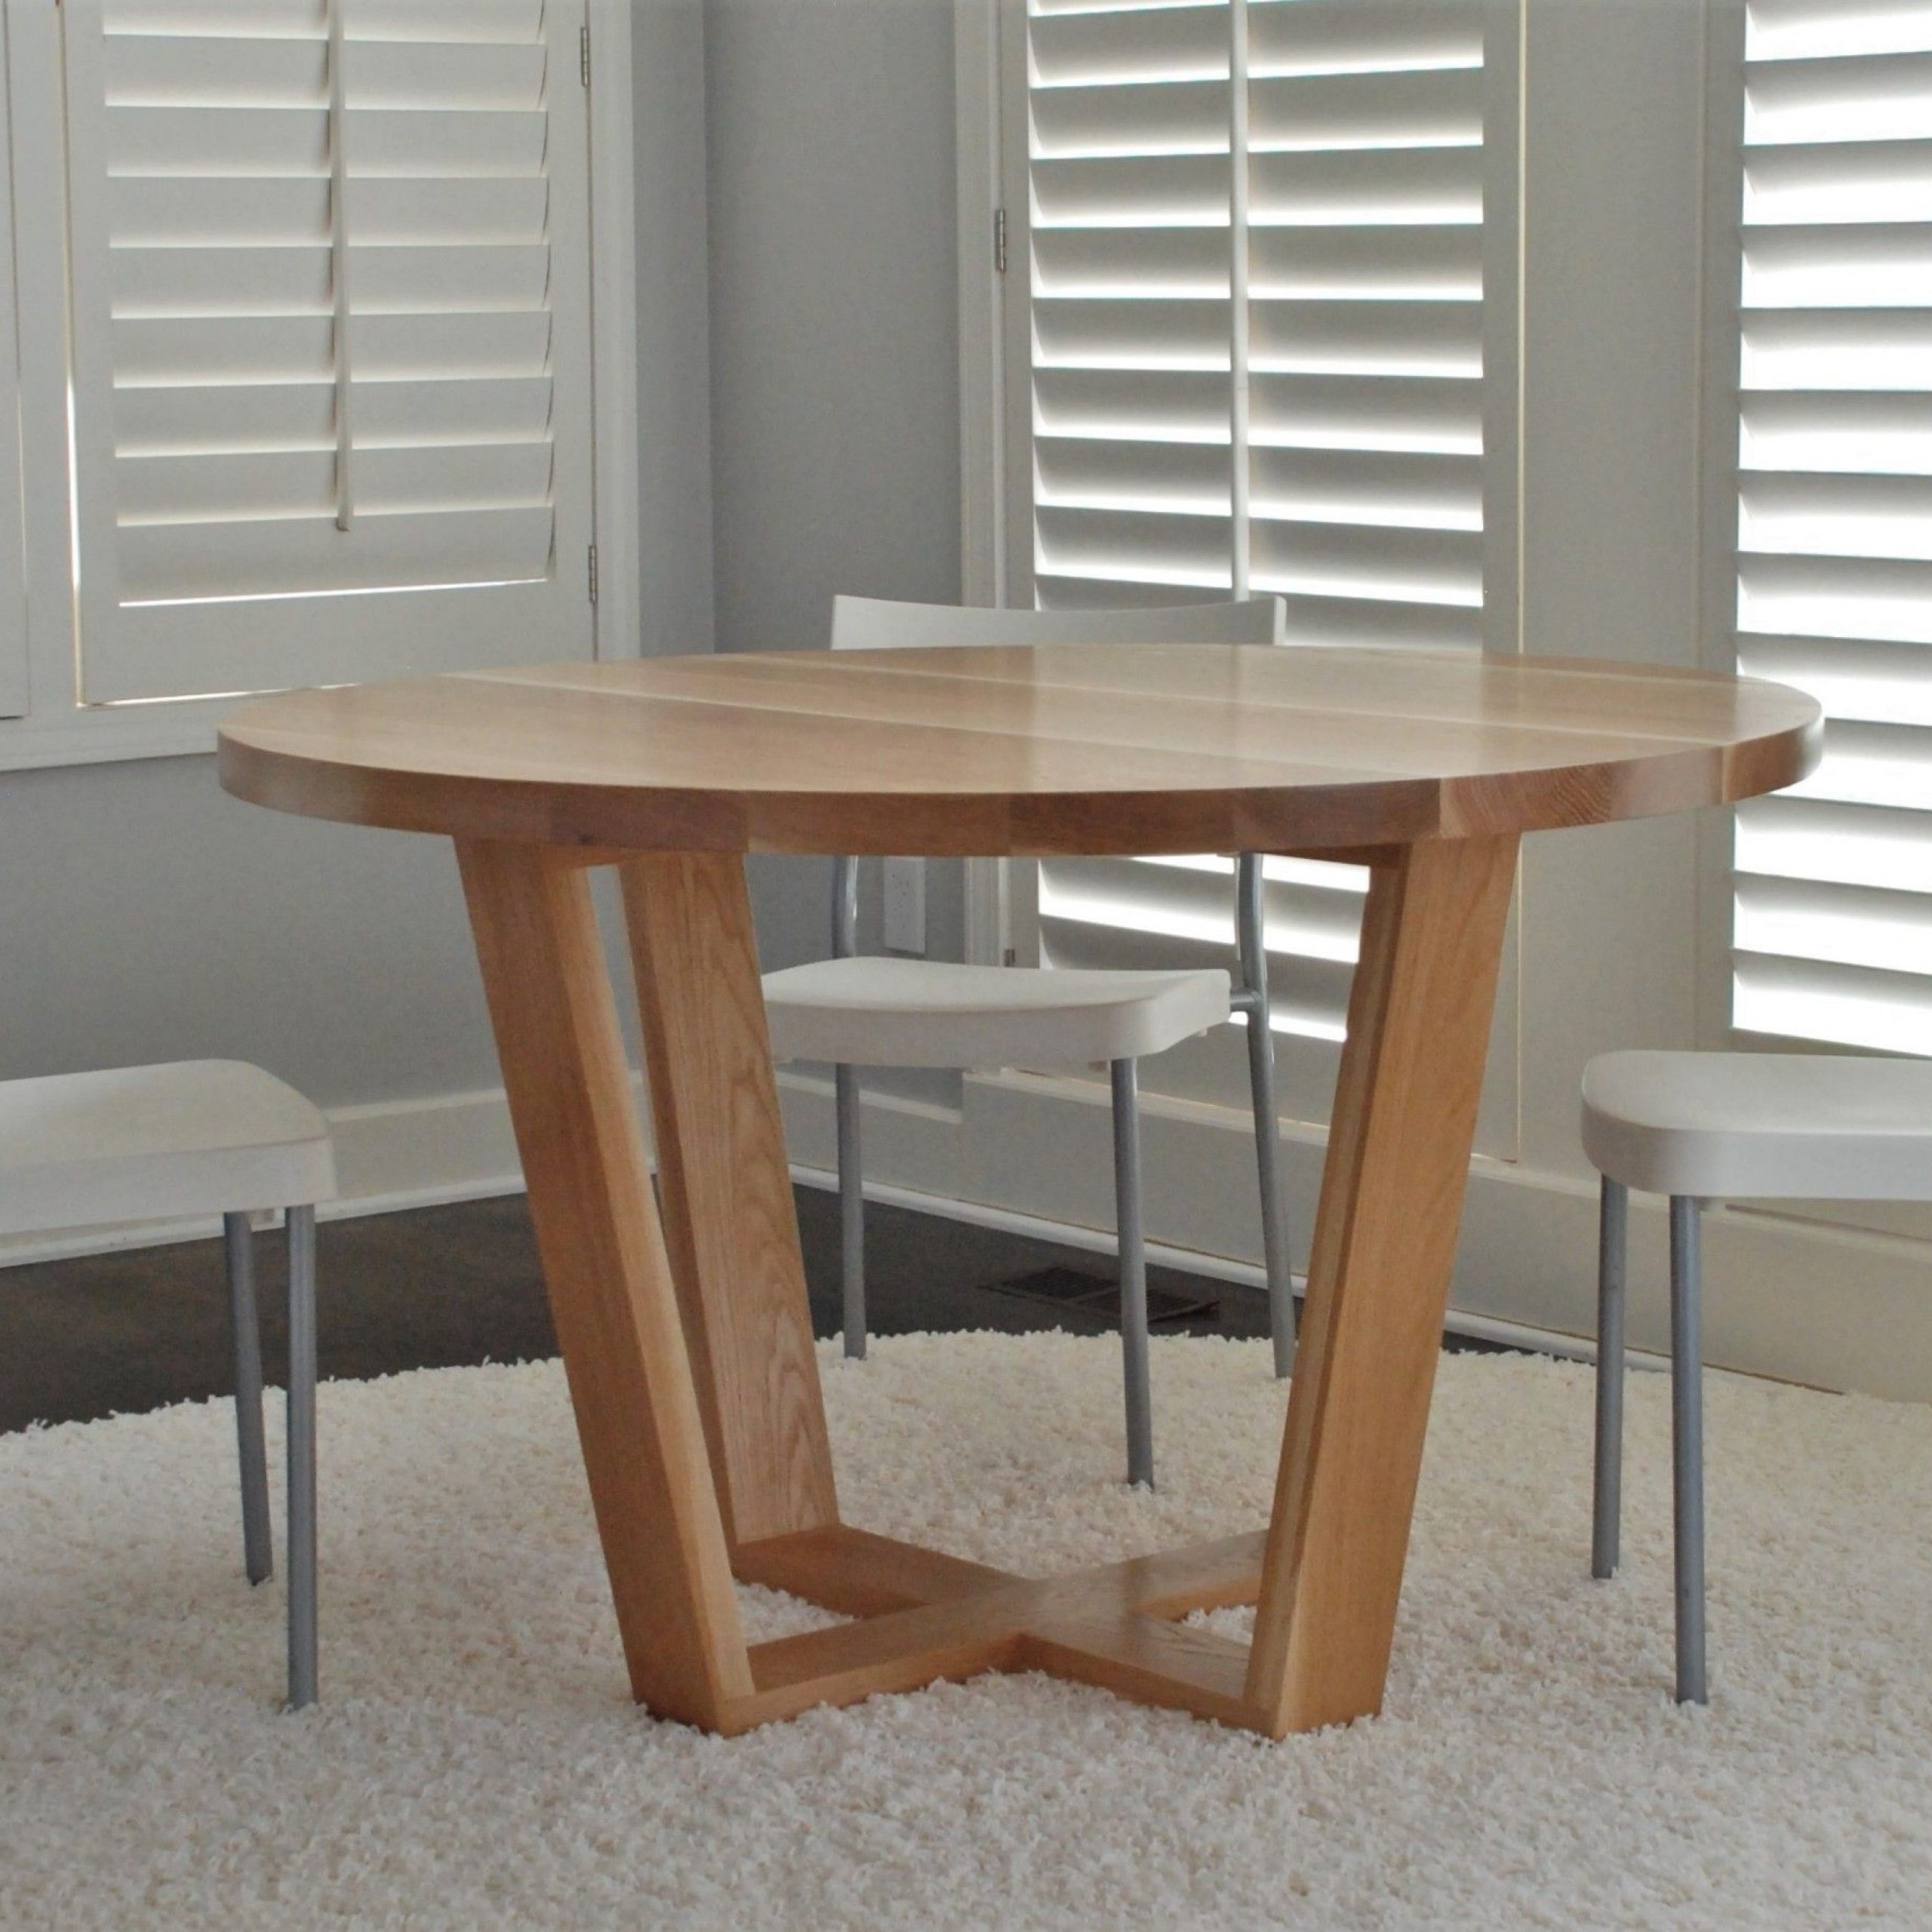 Best And Newest Hand Crafted Angled Leg Round Dining Tablebelak Inside Solid Wood Circular Dining Tables White (View 8 of 25)